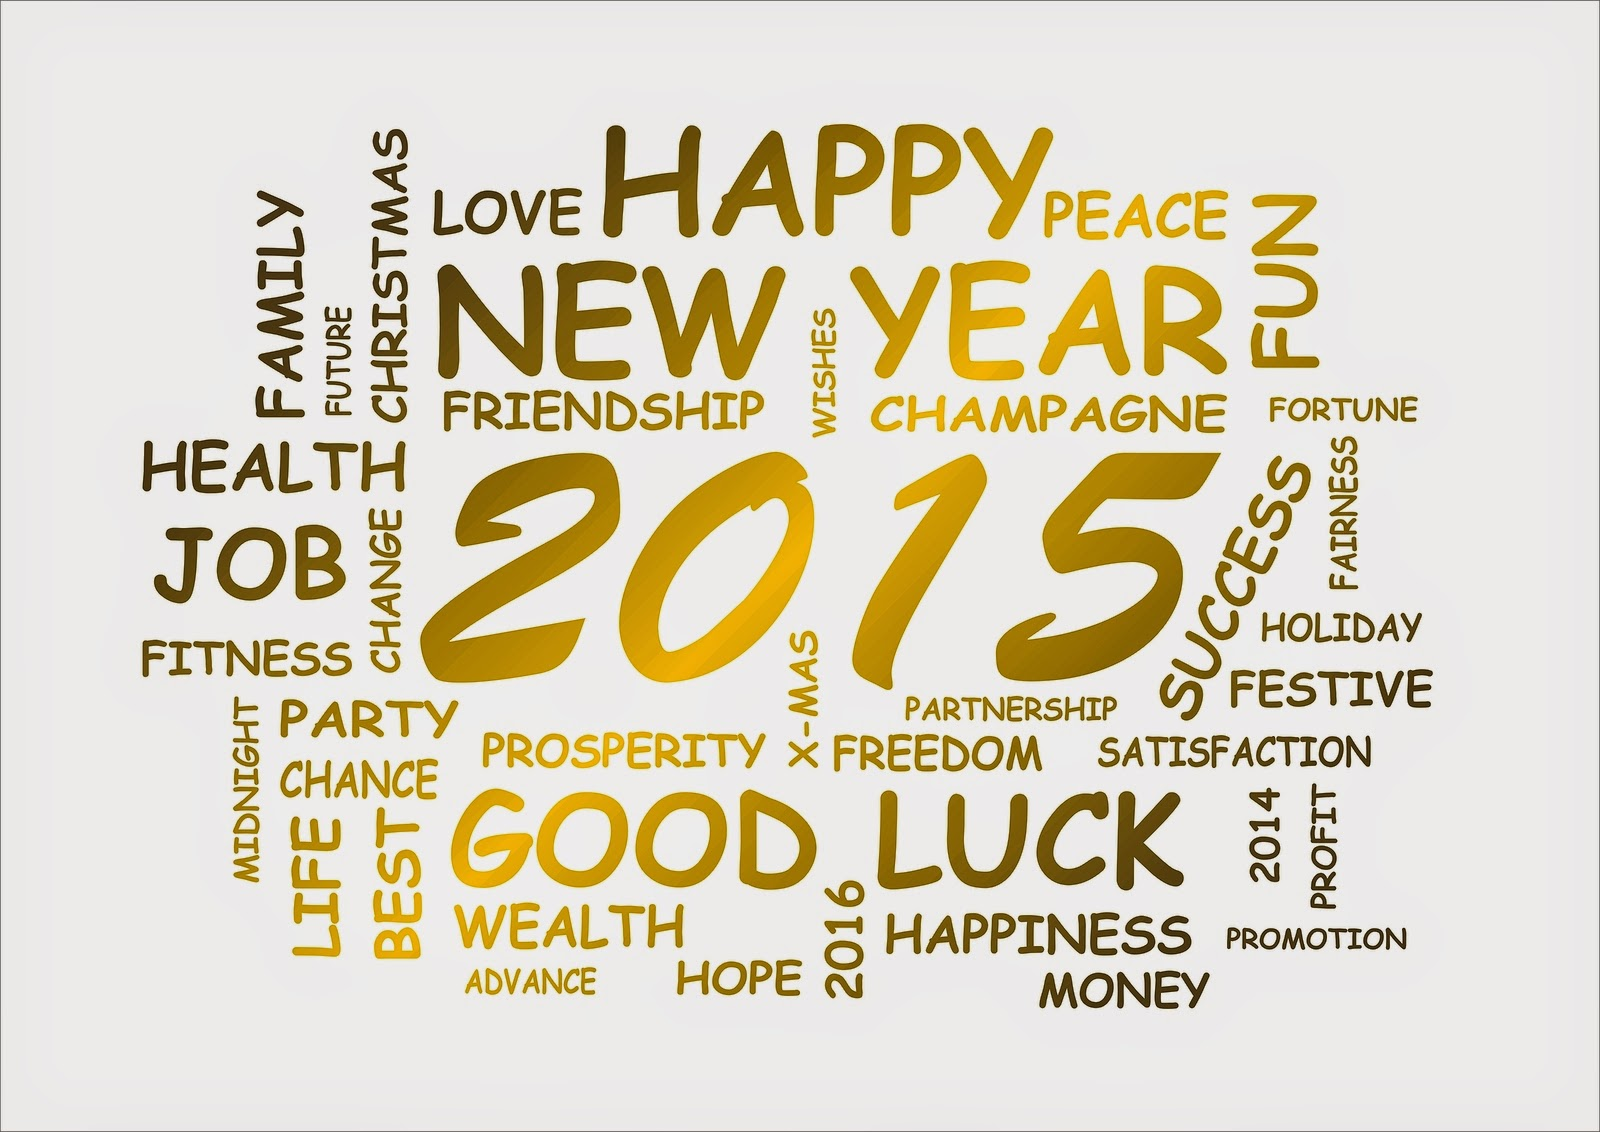 Happy New Year 2015 From All Of Us At Nigeria World News